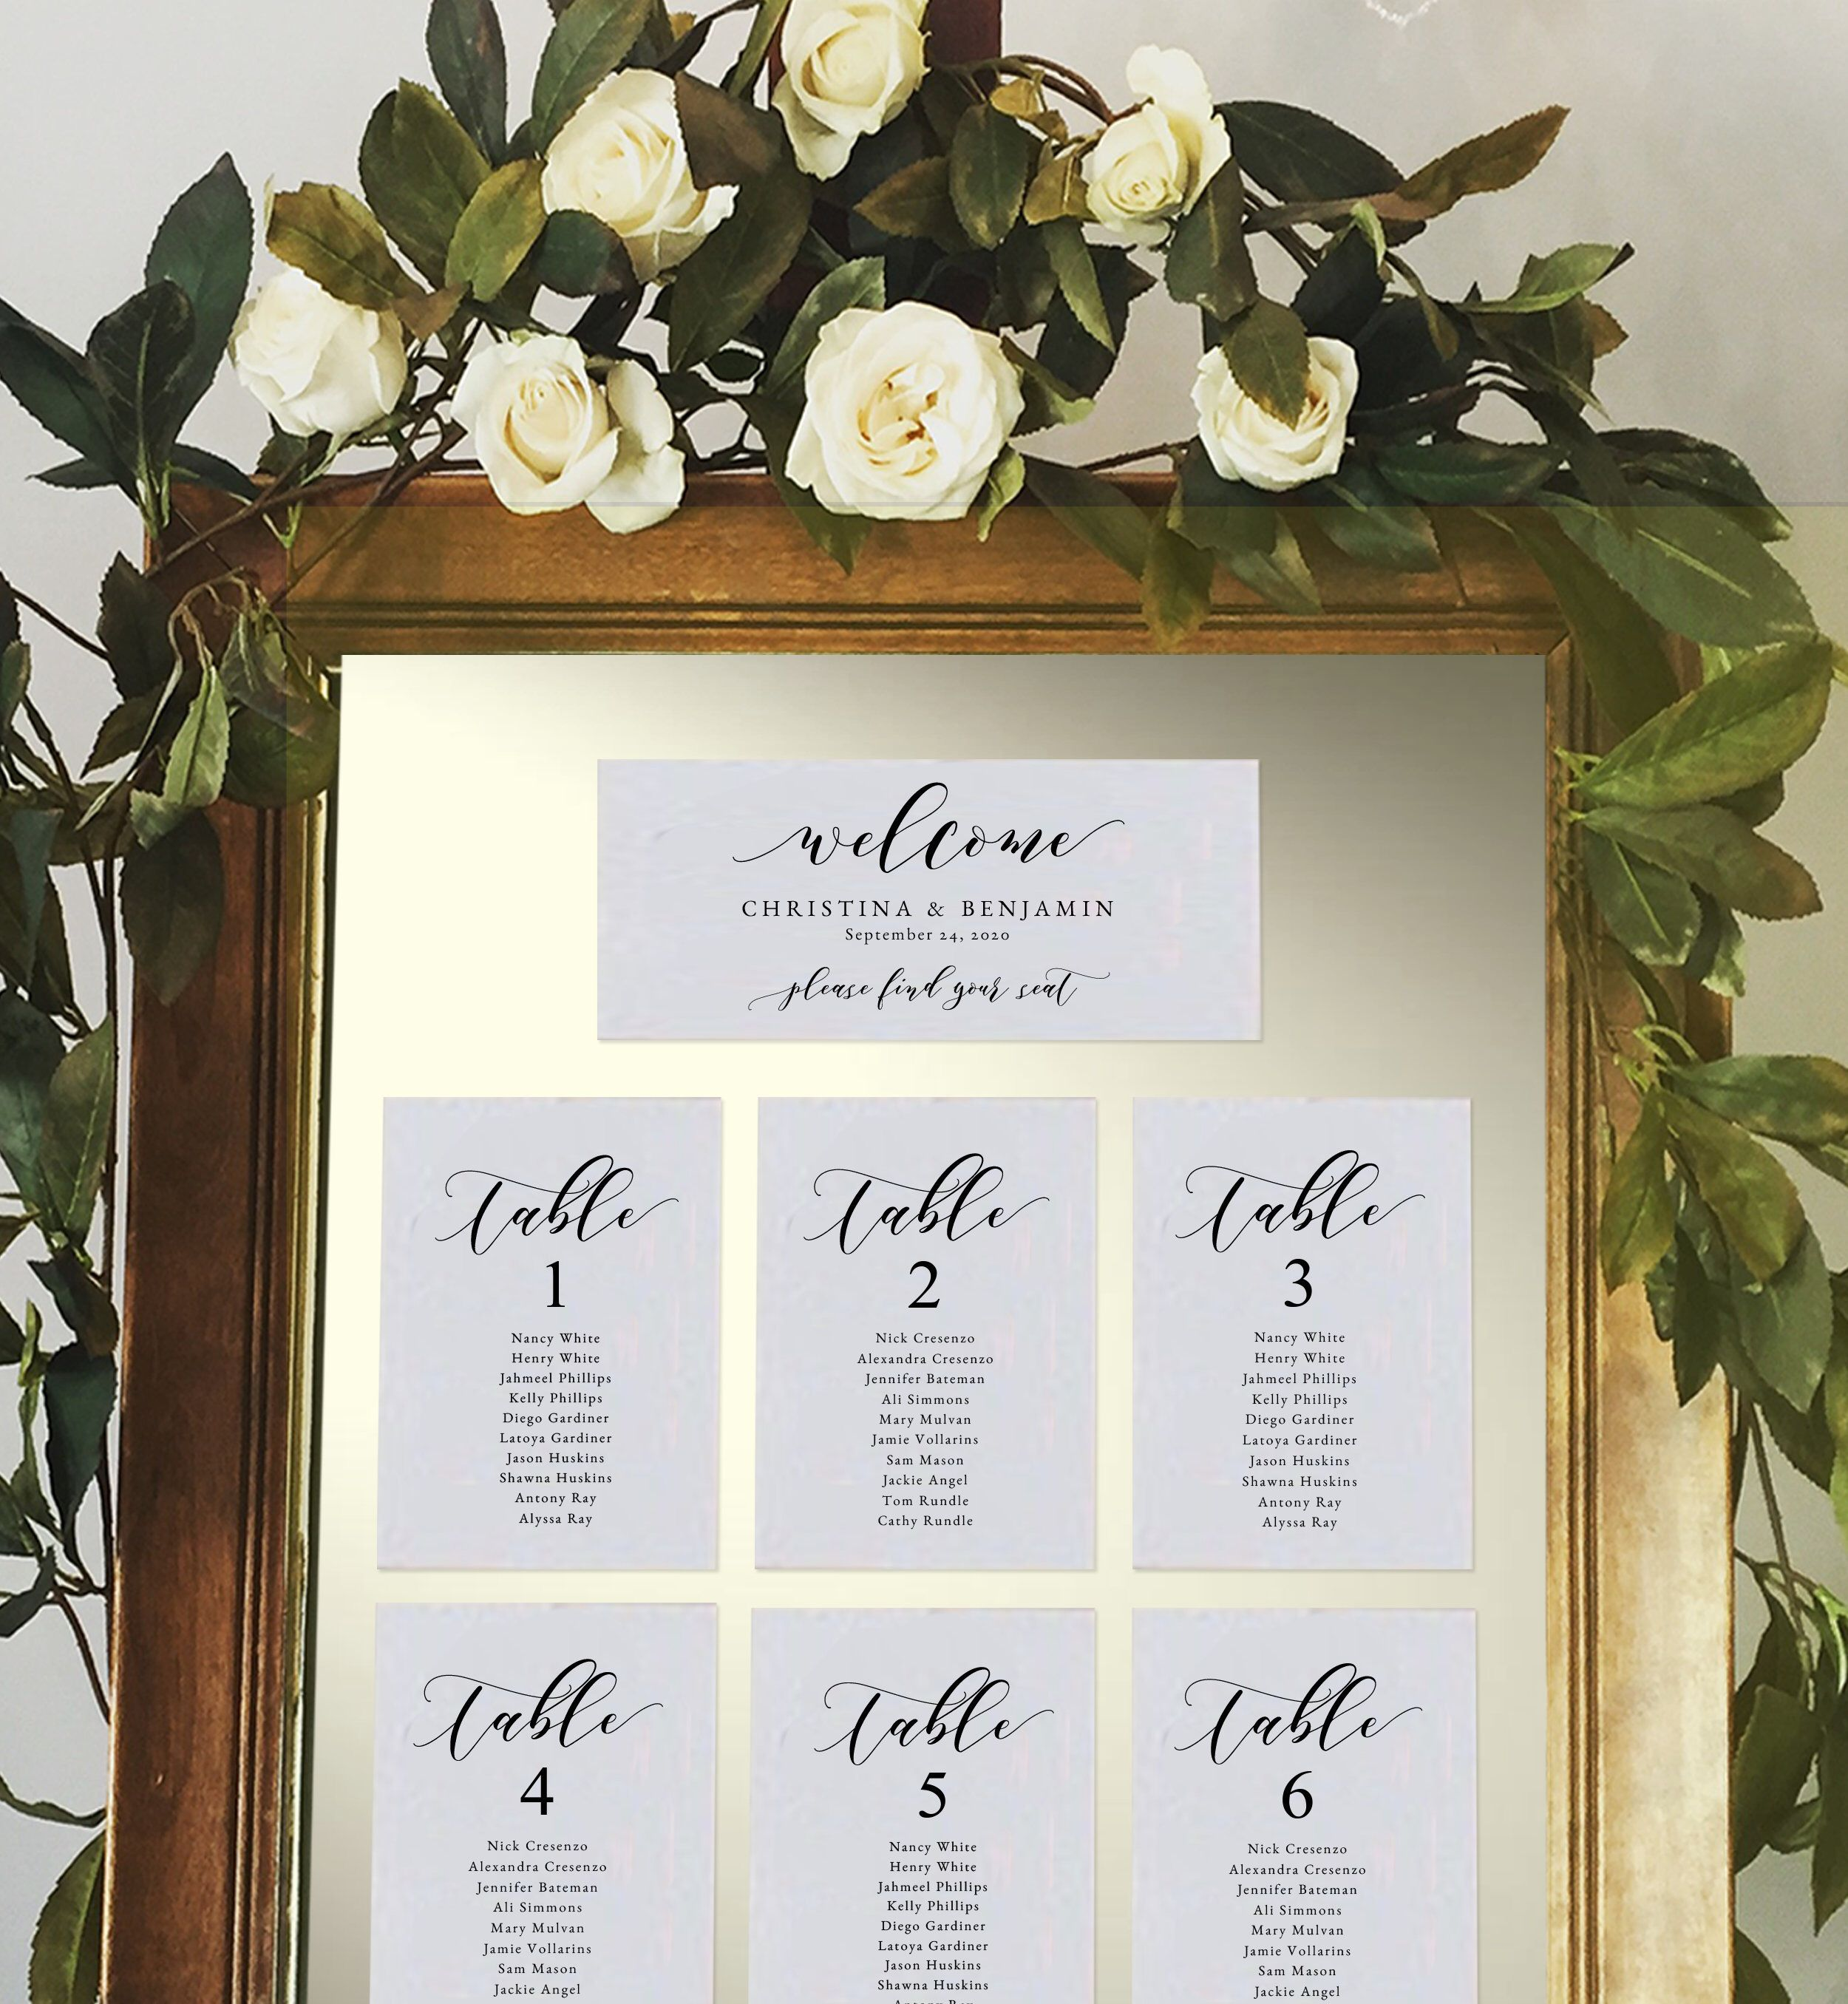 Wedding Seating Chart Cards Seating Card Template Etsy Seating Chart Wedding Wedding Seating Cards Seating Chart Wedding Diy